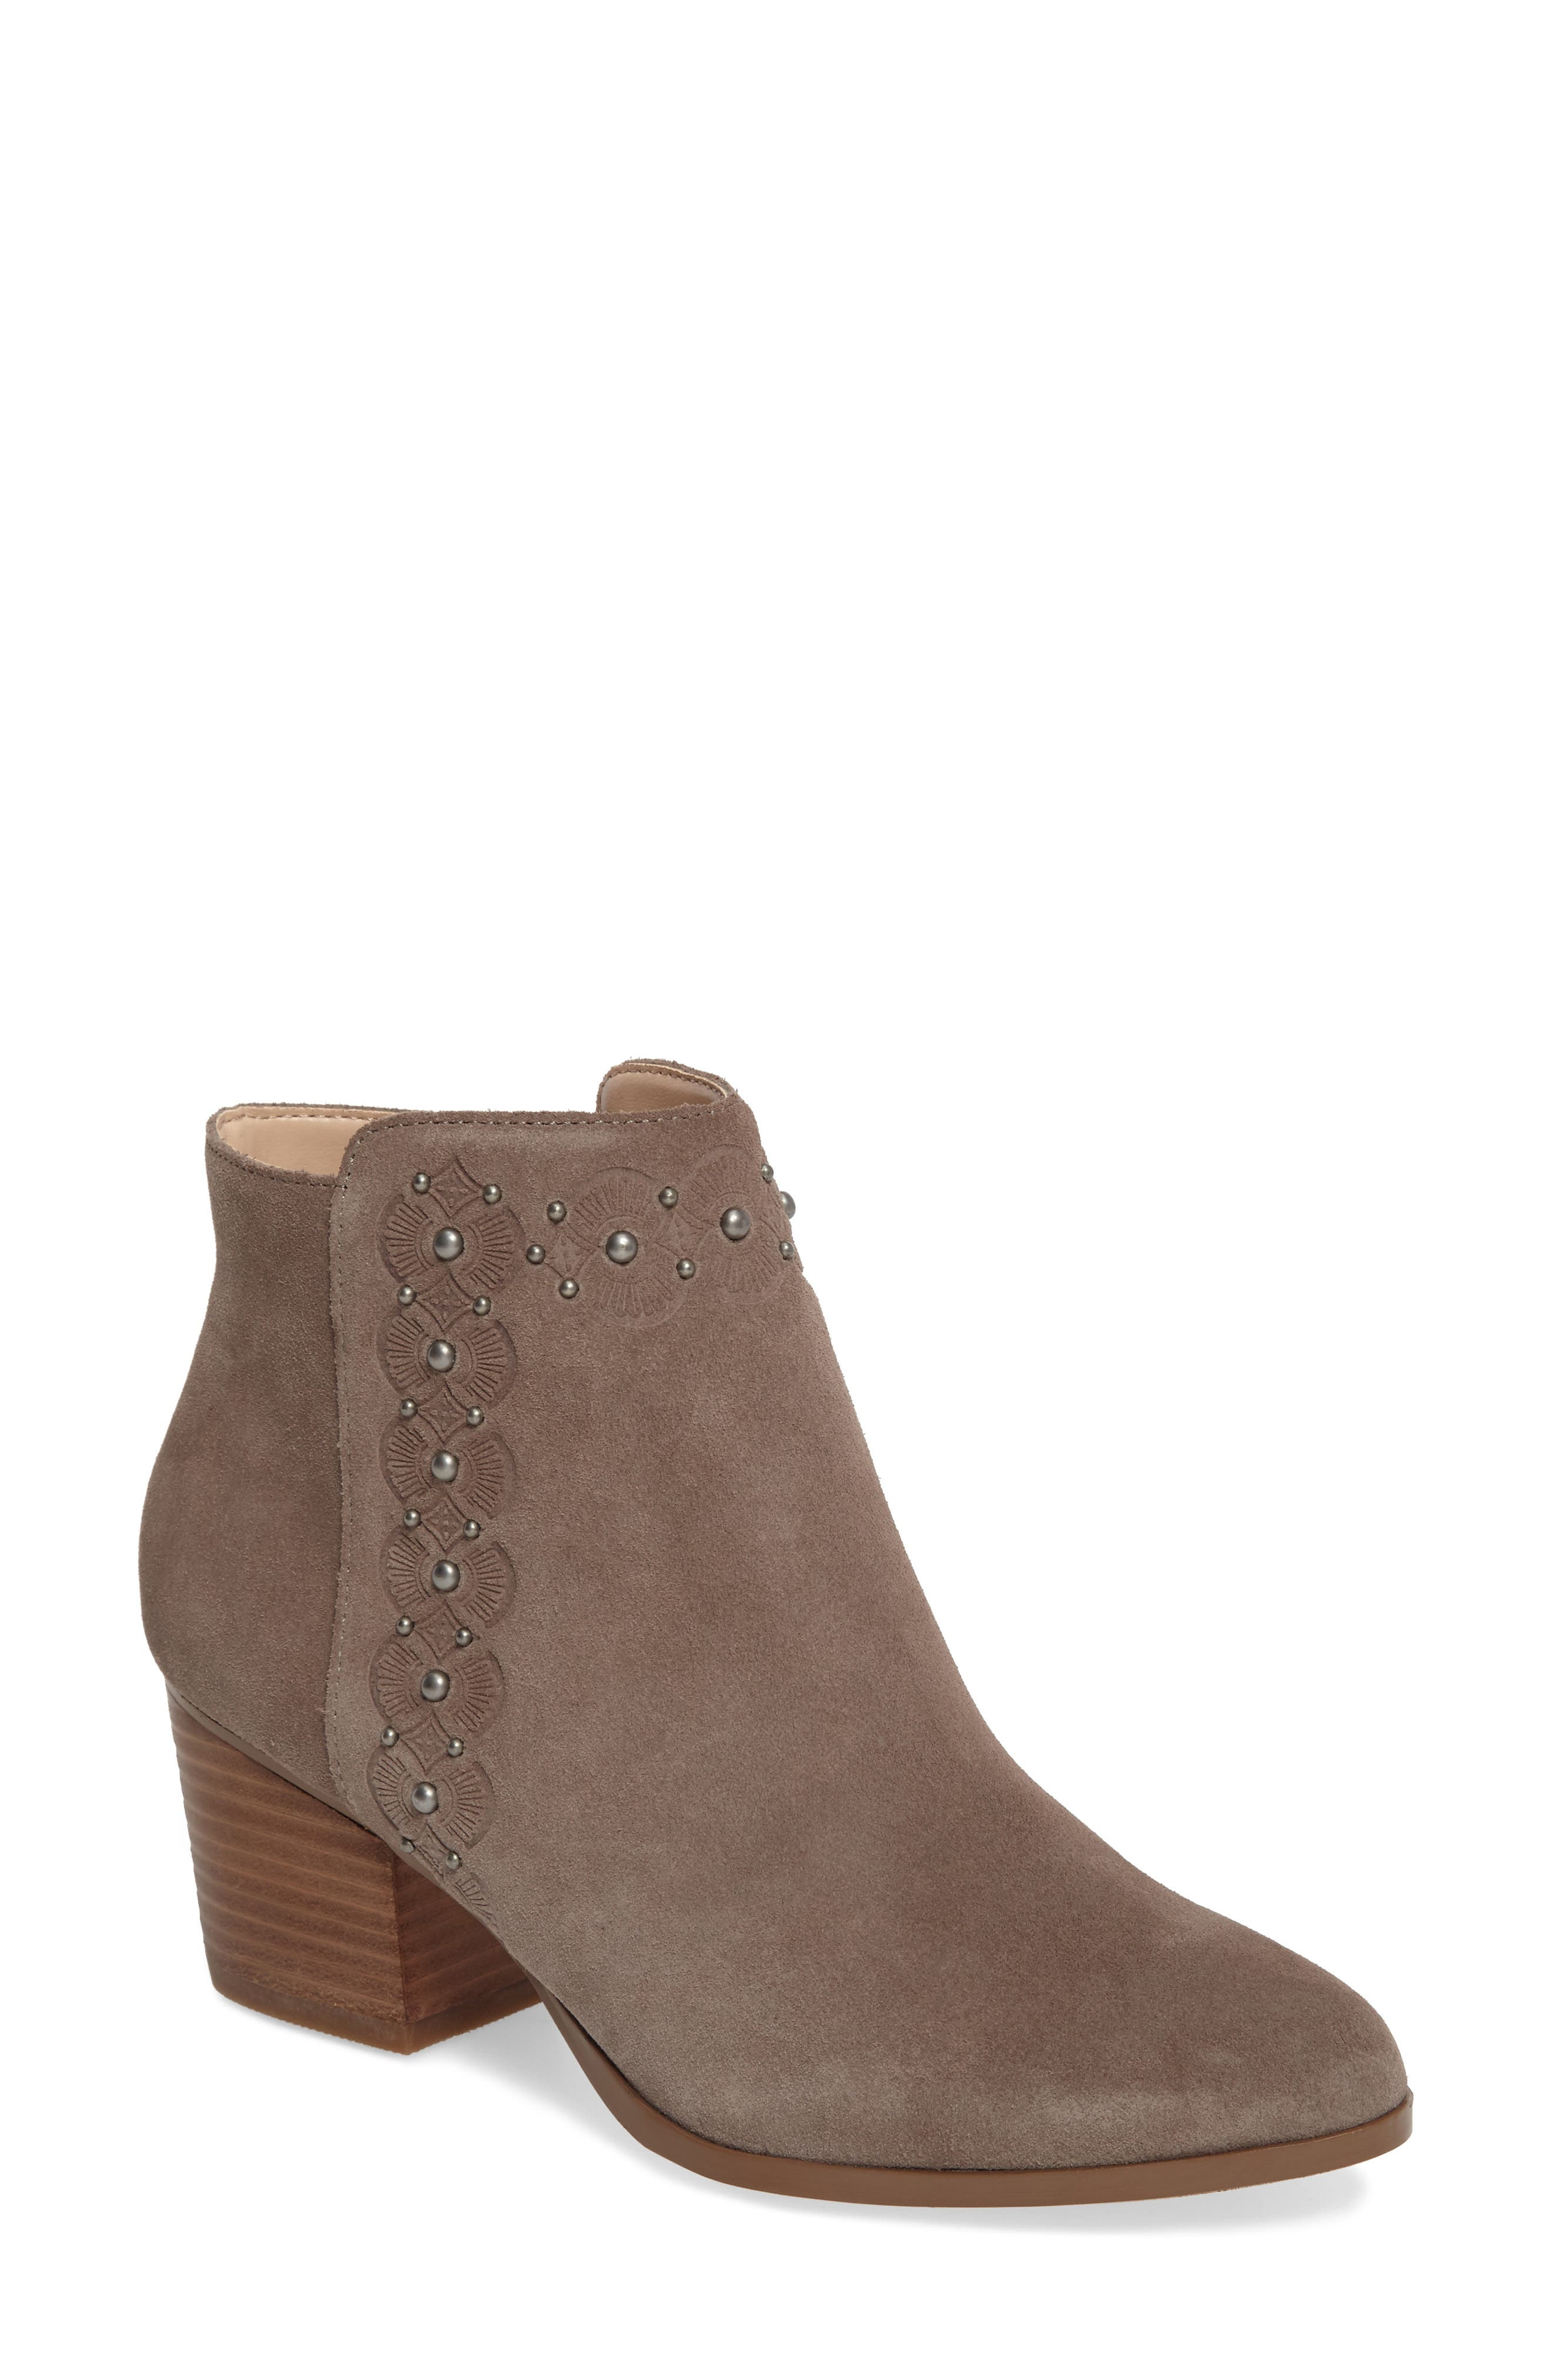 Gala Studded Embossed Bootie,                         Main,                         color, Mushroom Suede